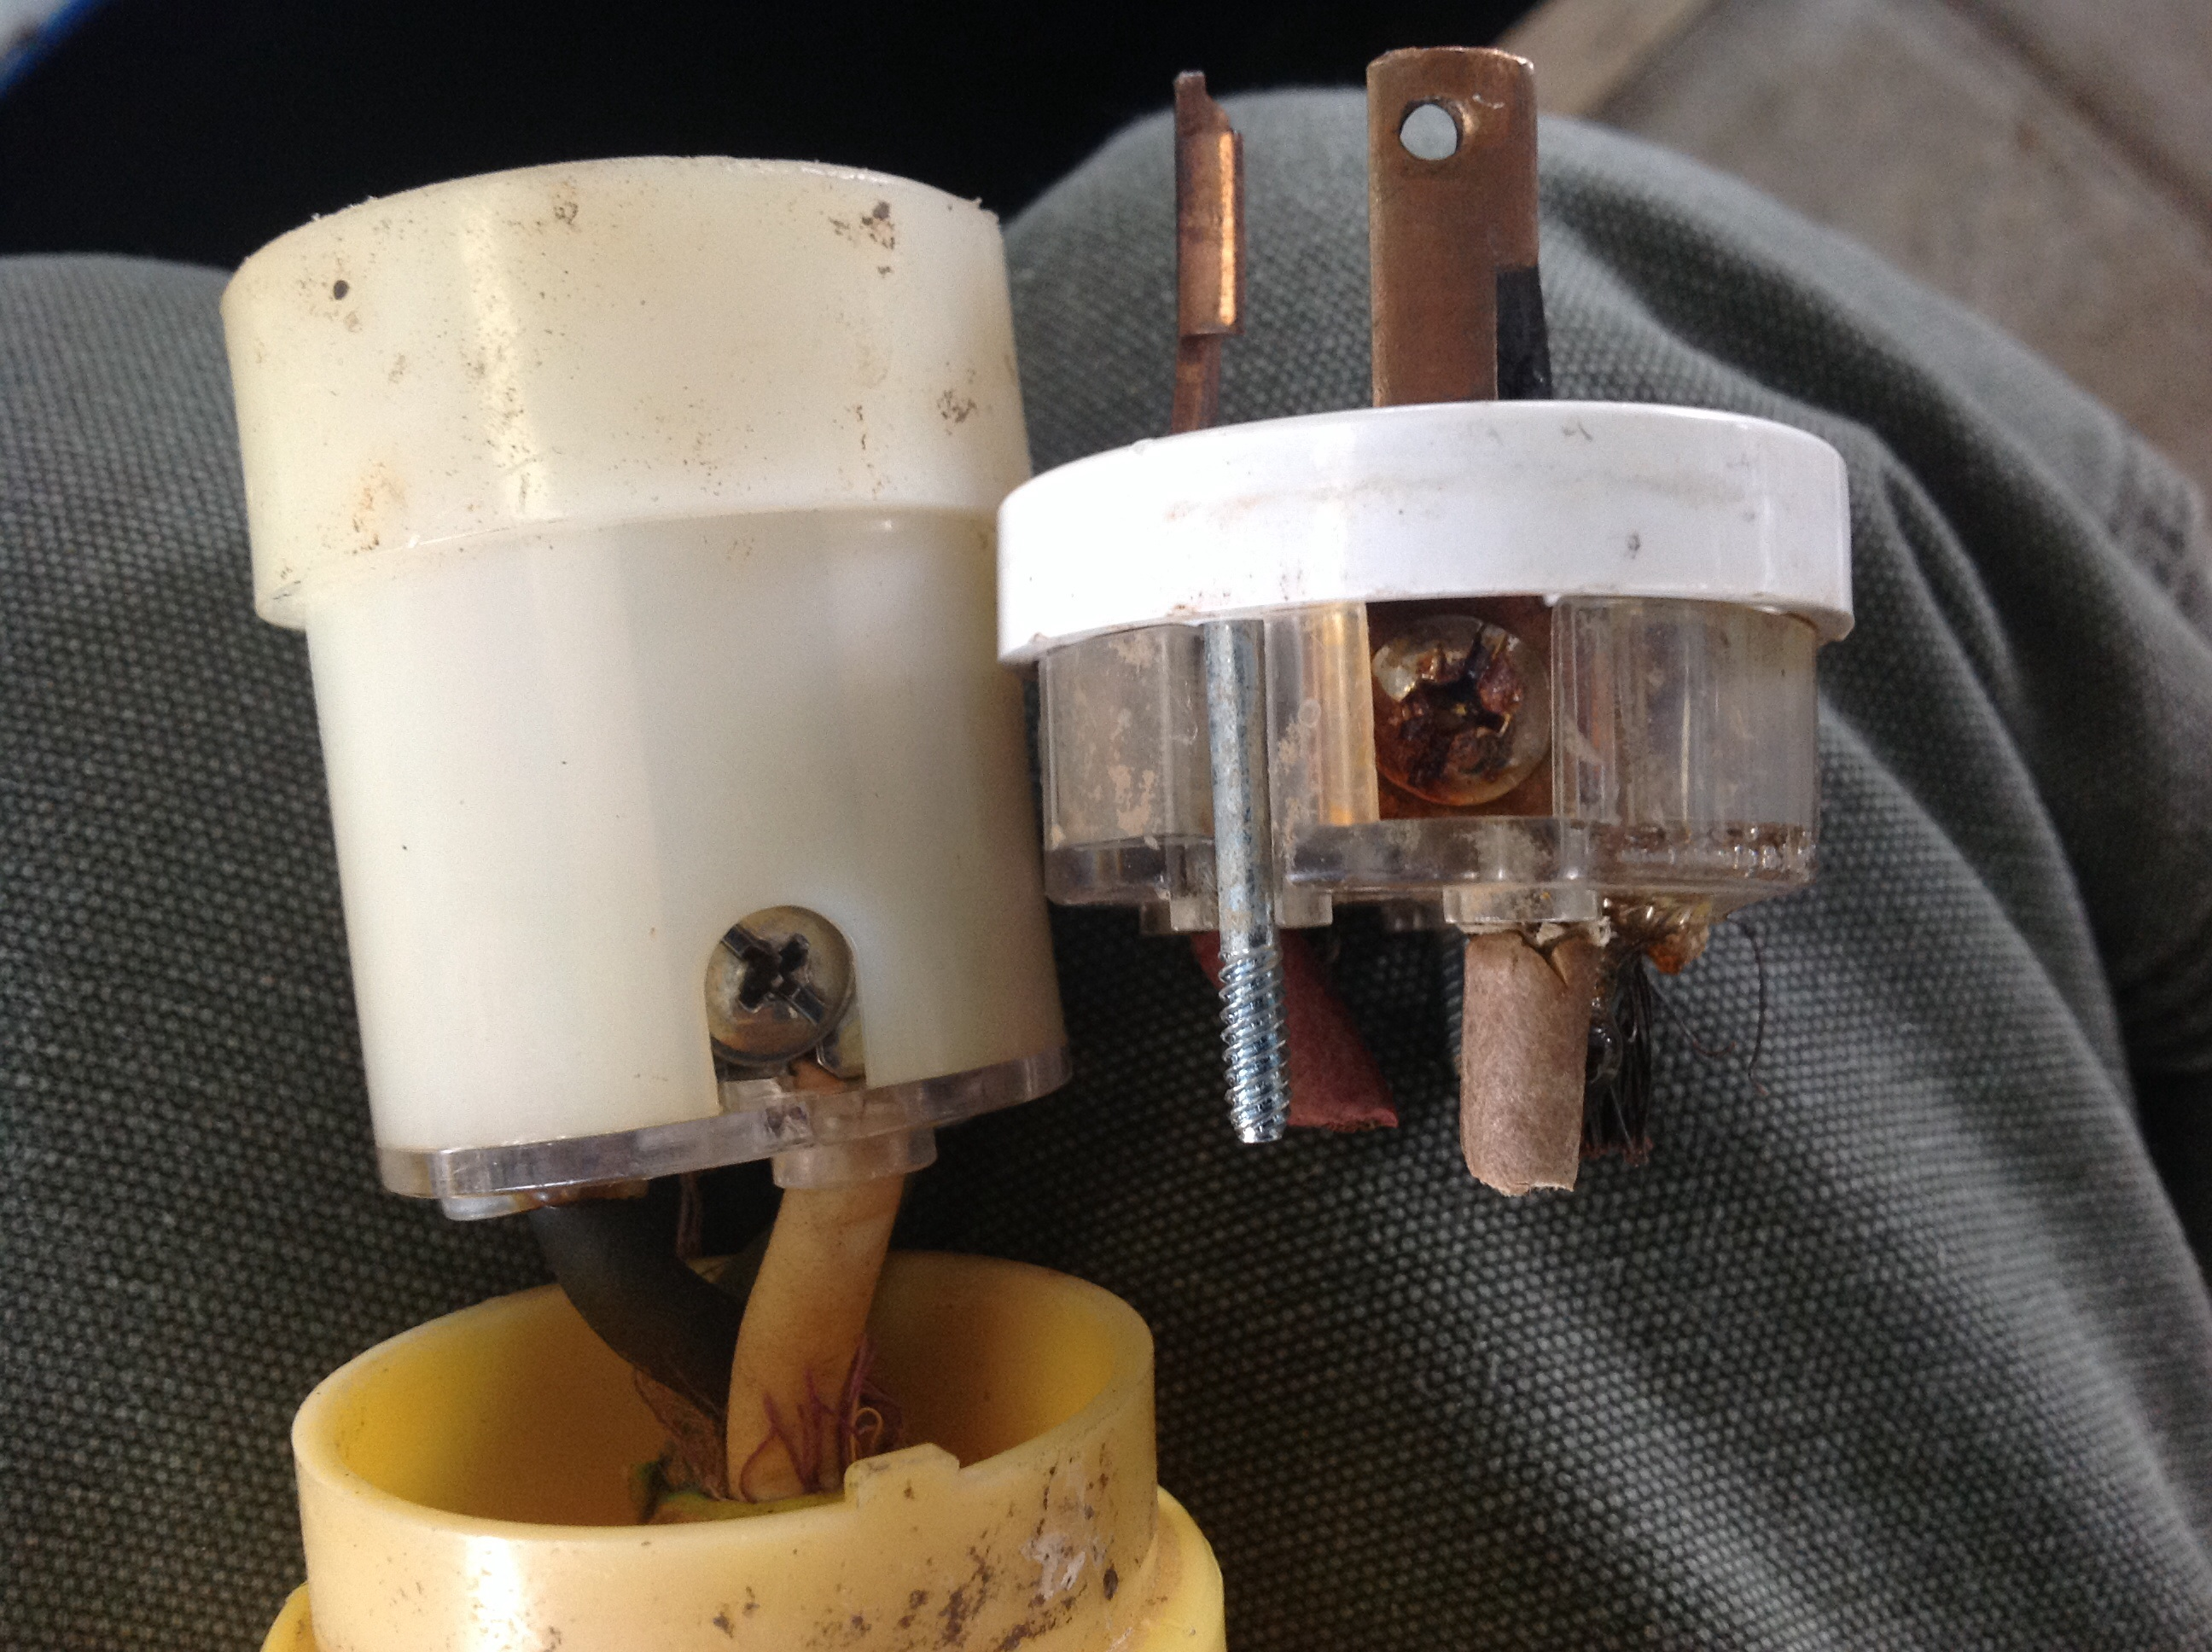 Boating Lessons Learned Burned Marine Electrical Shore Power Plug Wiring A Lesson Vs Standard